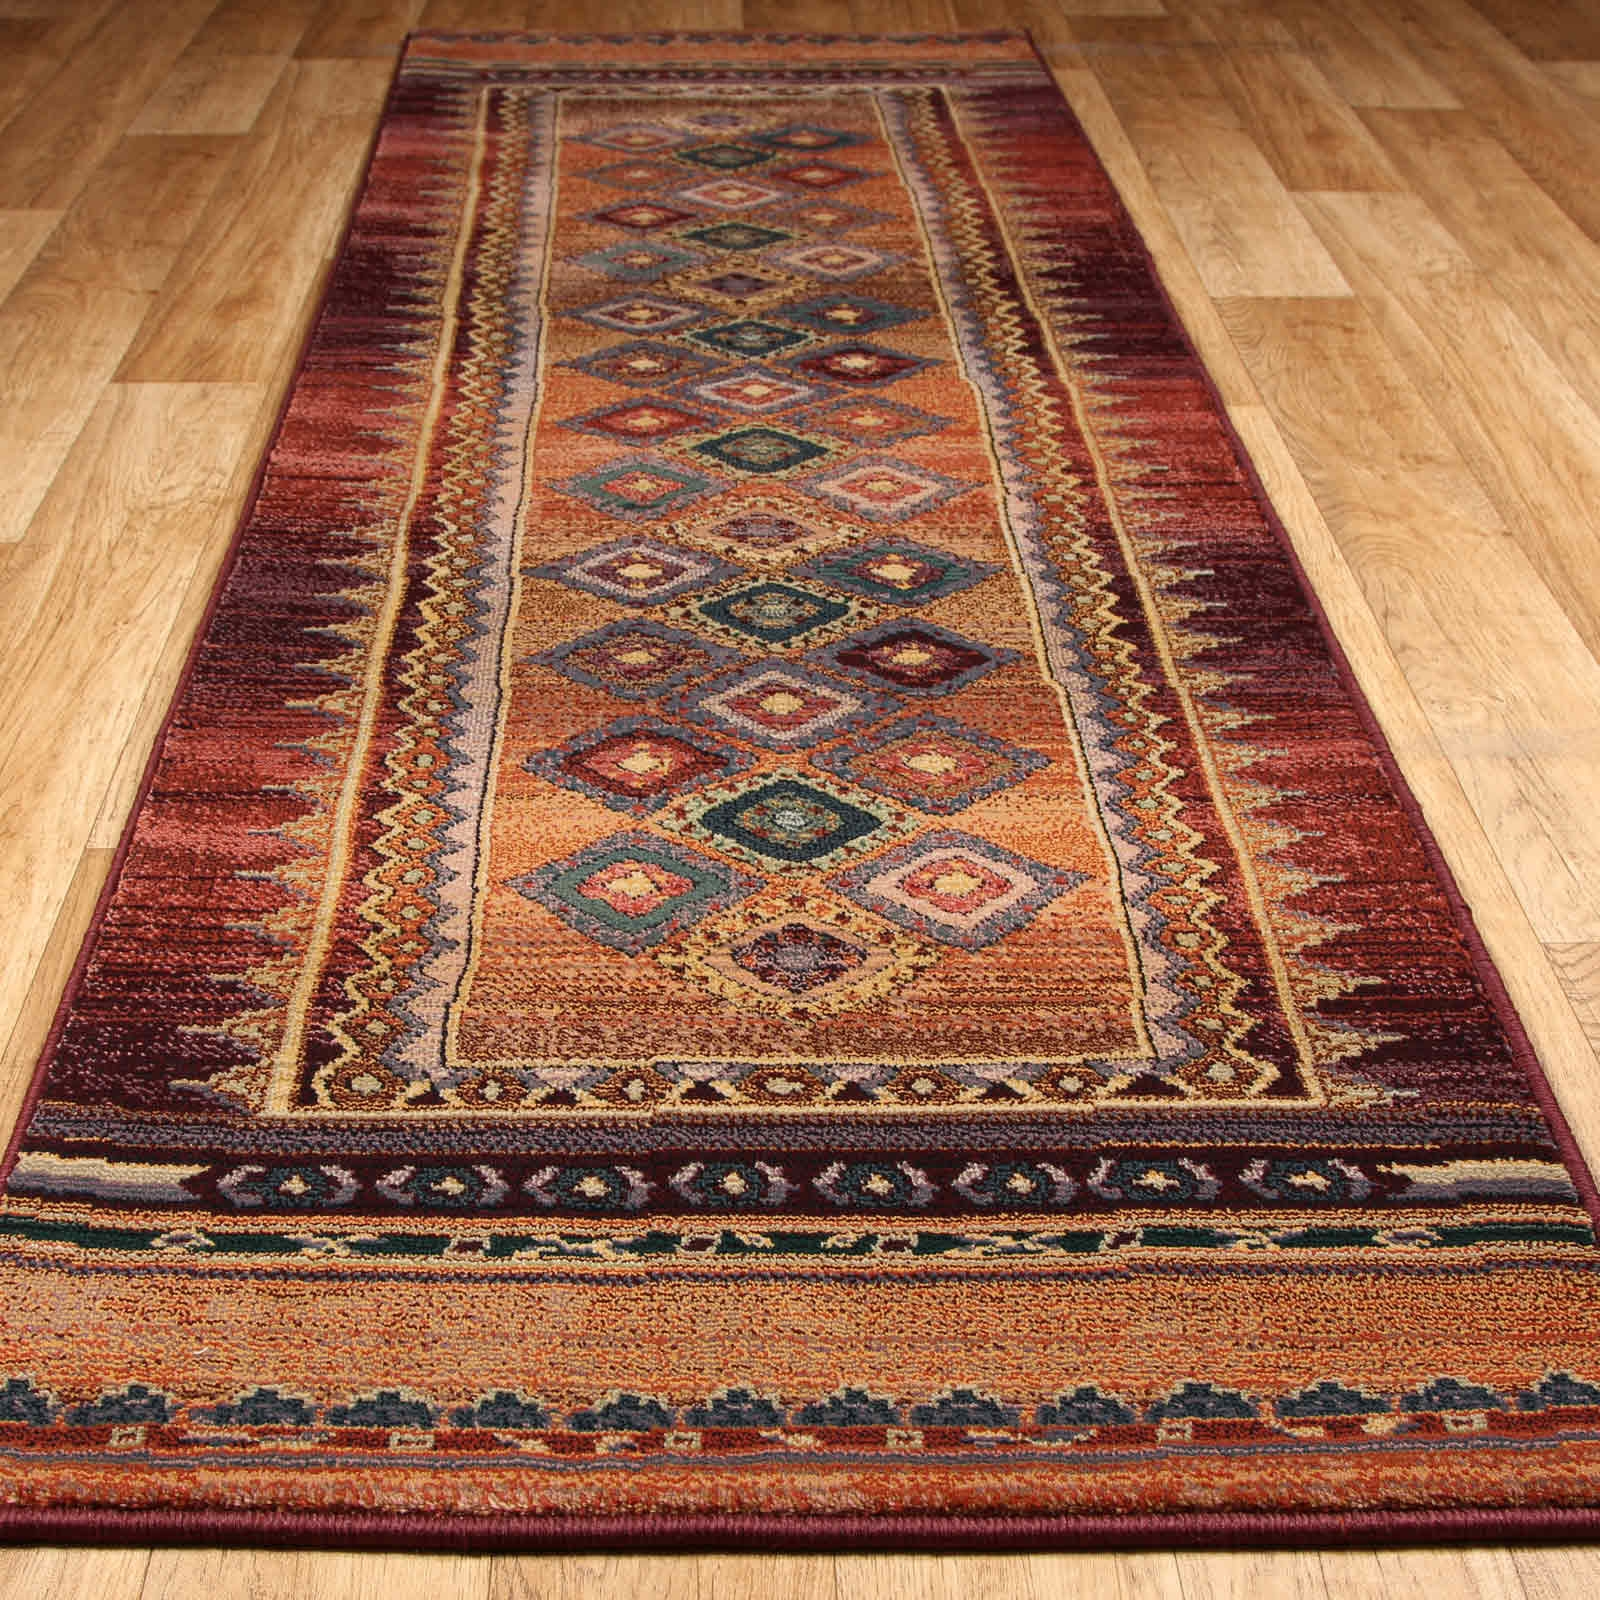 20 Best Of Washable Runner Rugs For Hallways